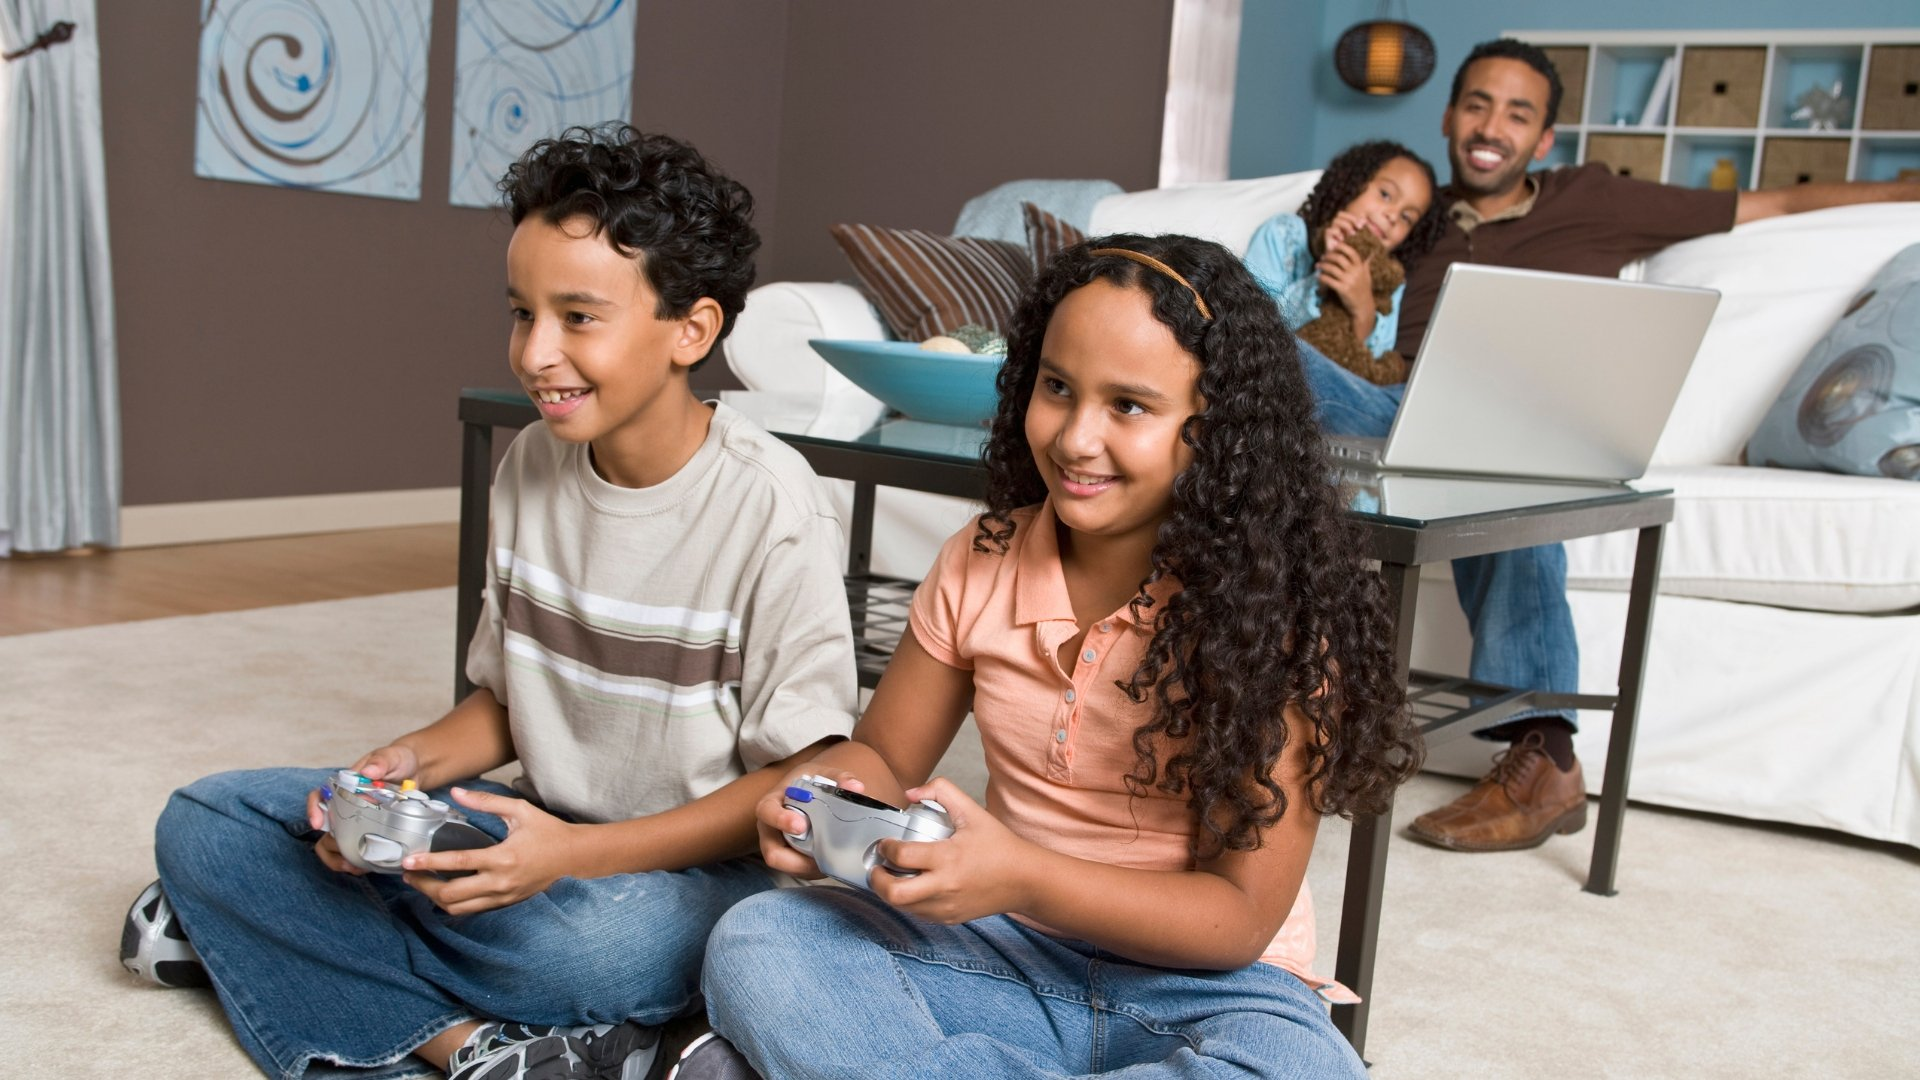 Kids Playing Video Games While Parents Relax on Couch